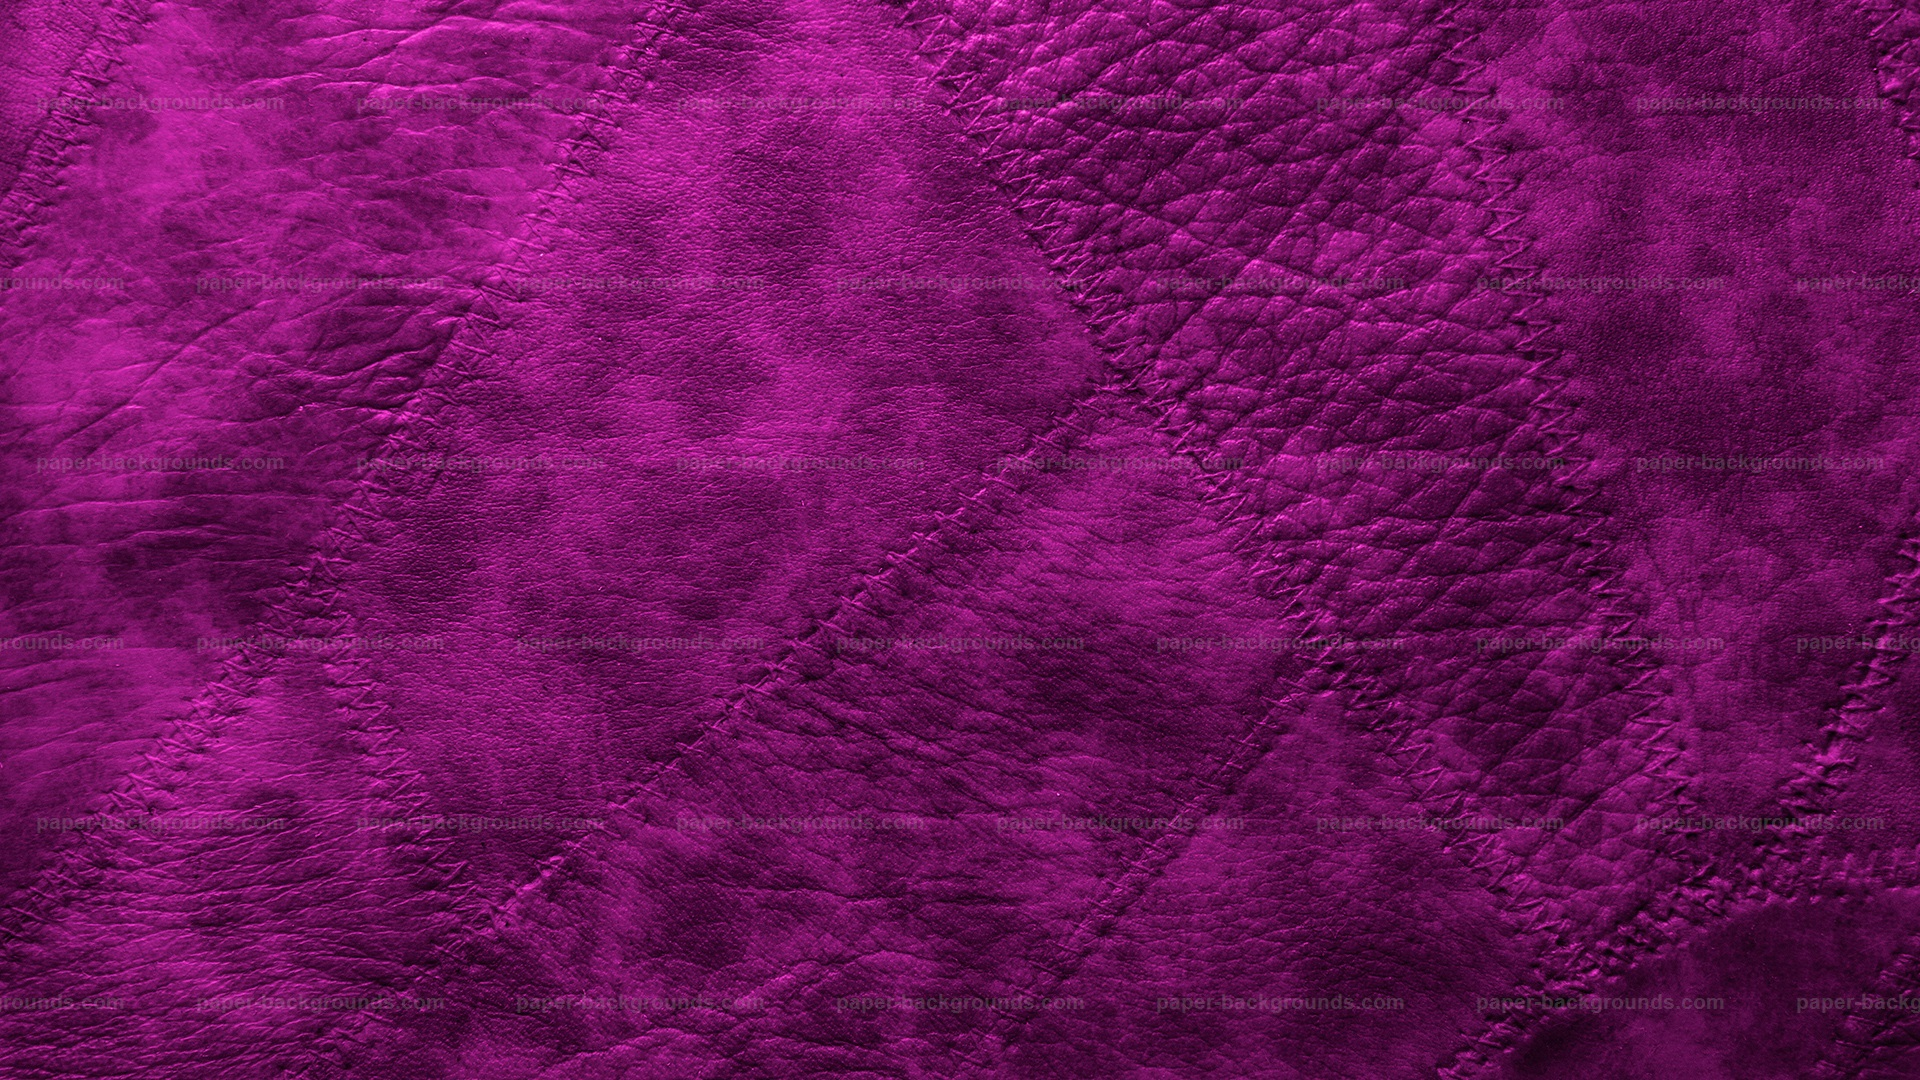 Purple Sewed Leather Patches Background HD